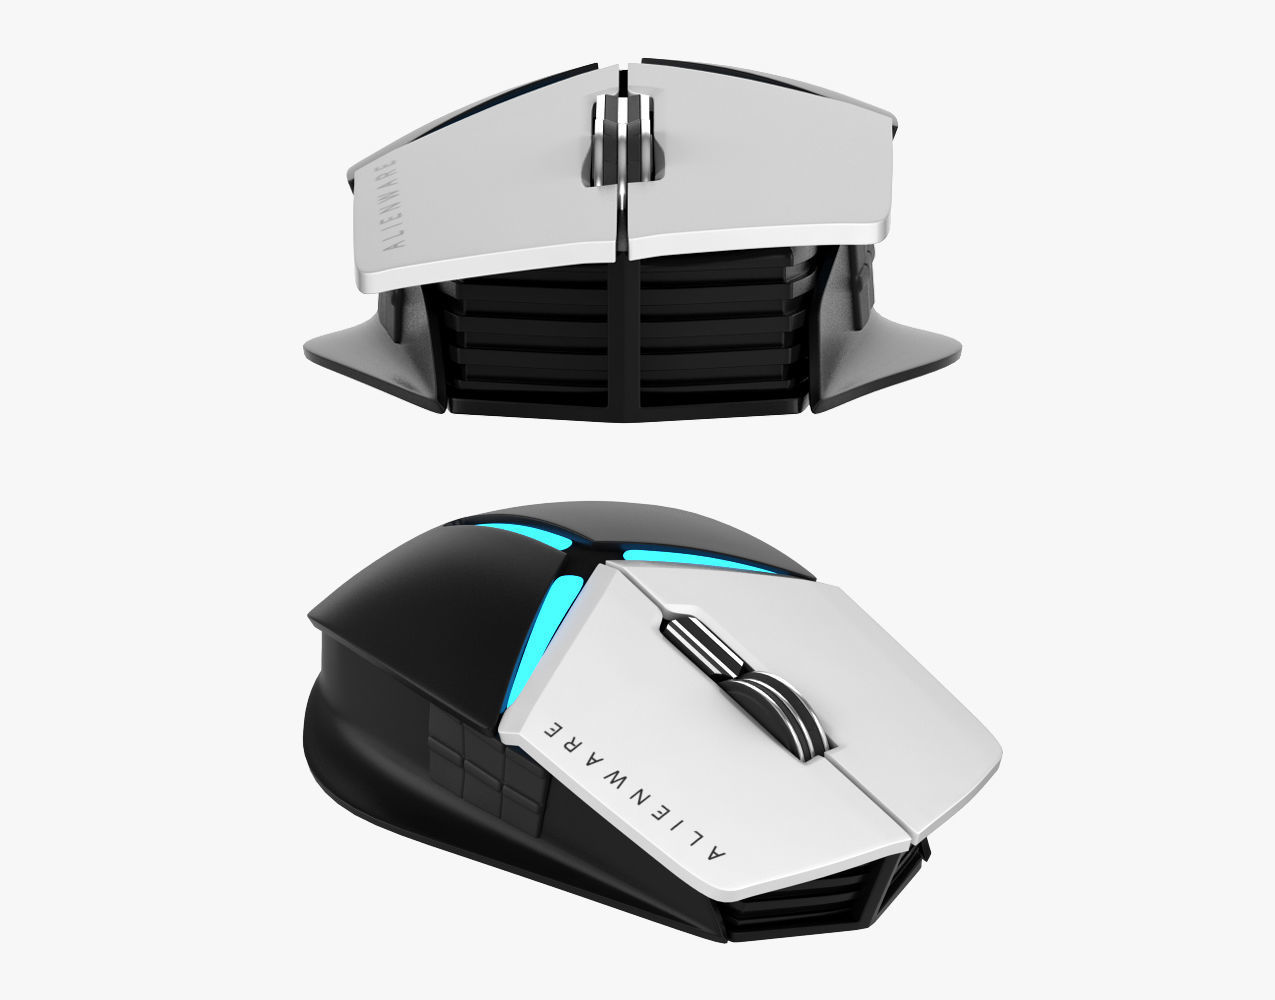 d36402e72f7 Dell Alienware Elite Gaming Mouse AW958 3D | CGTrader